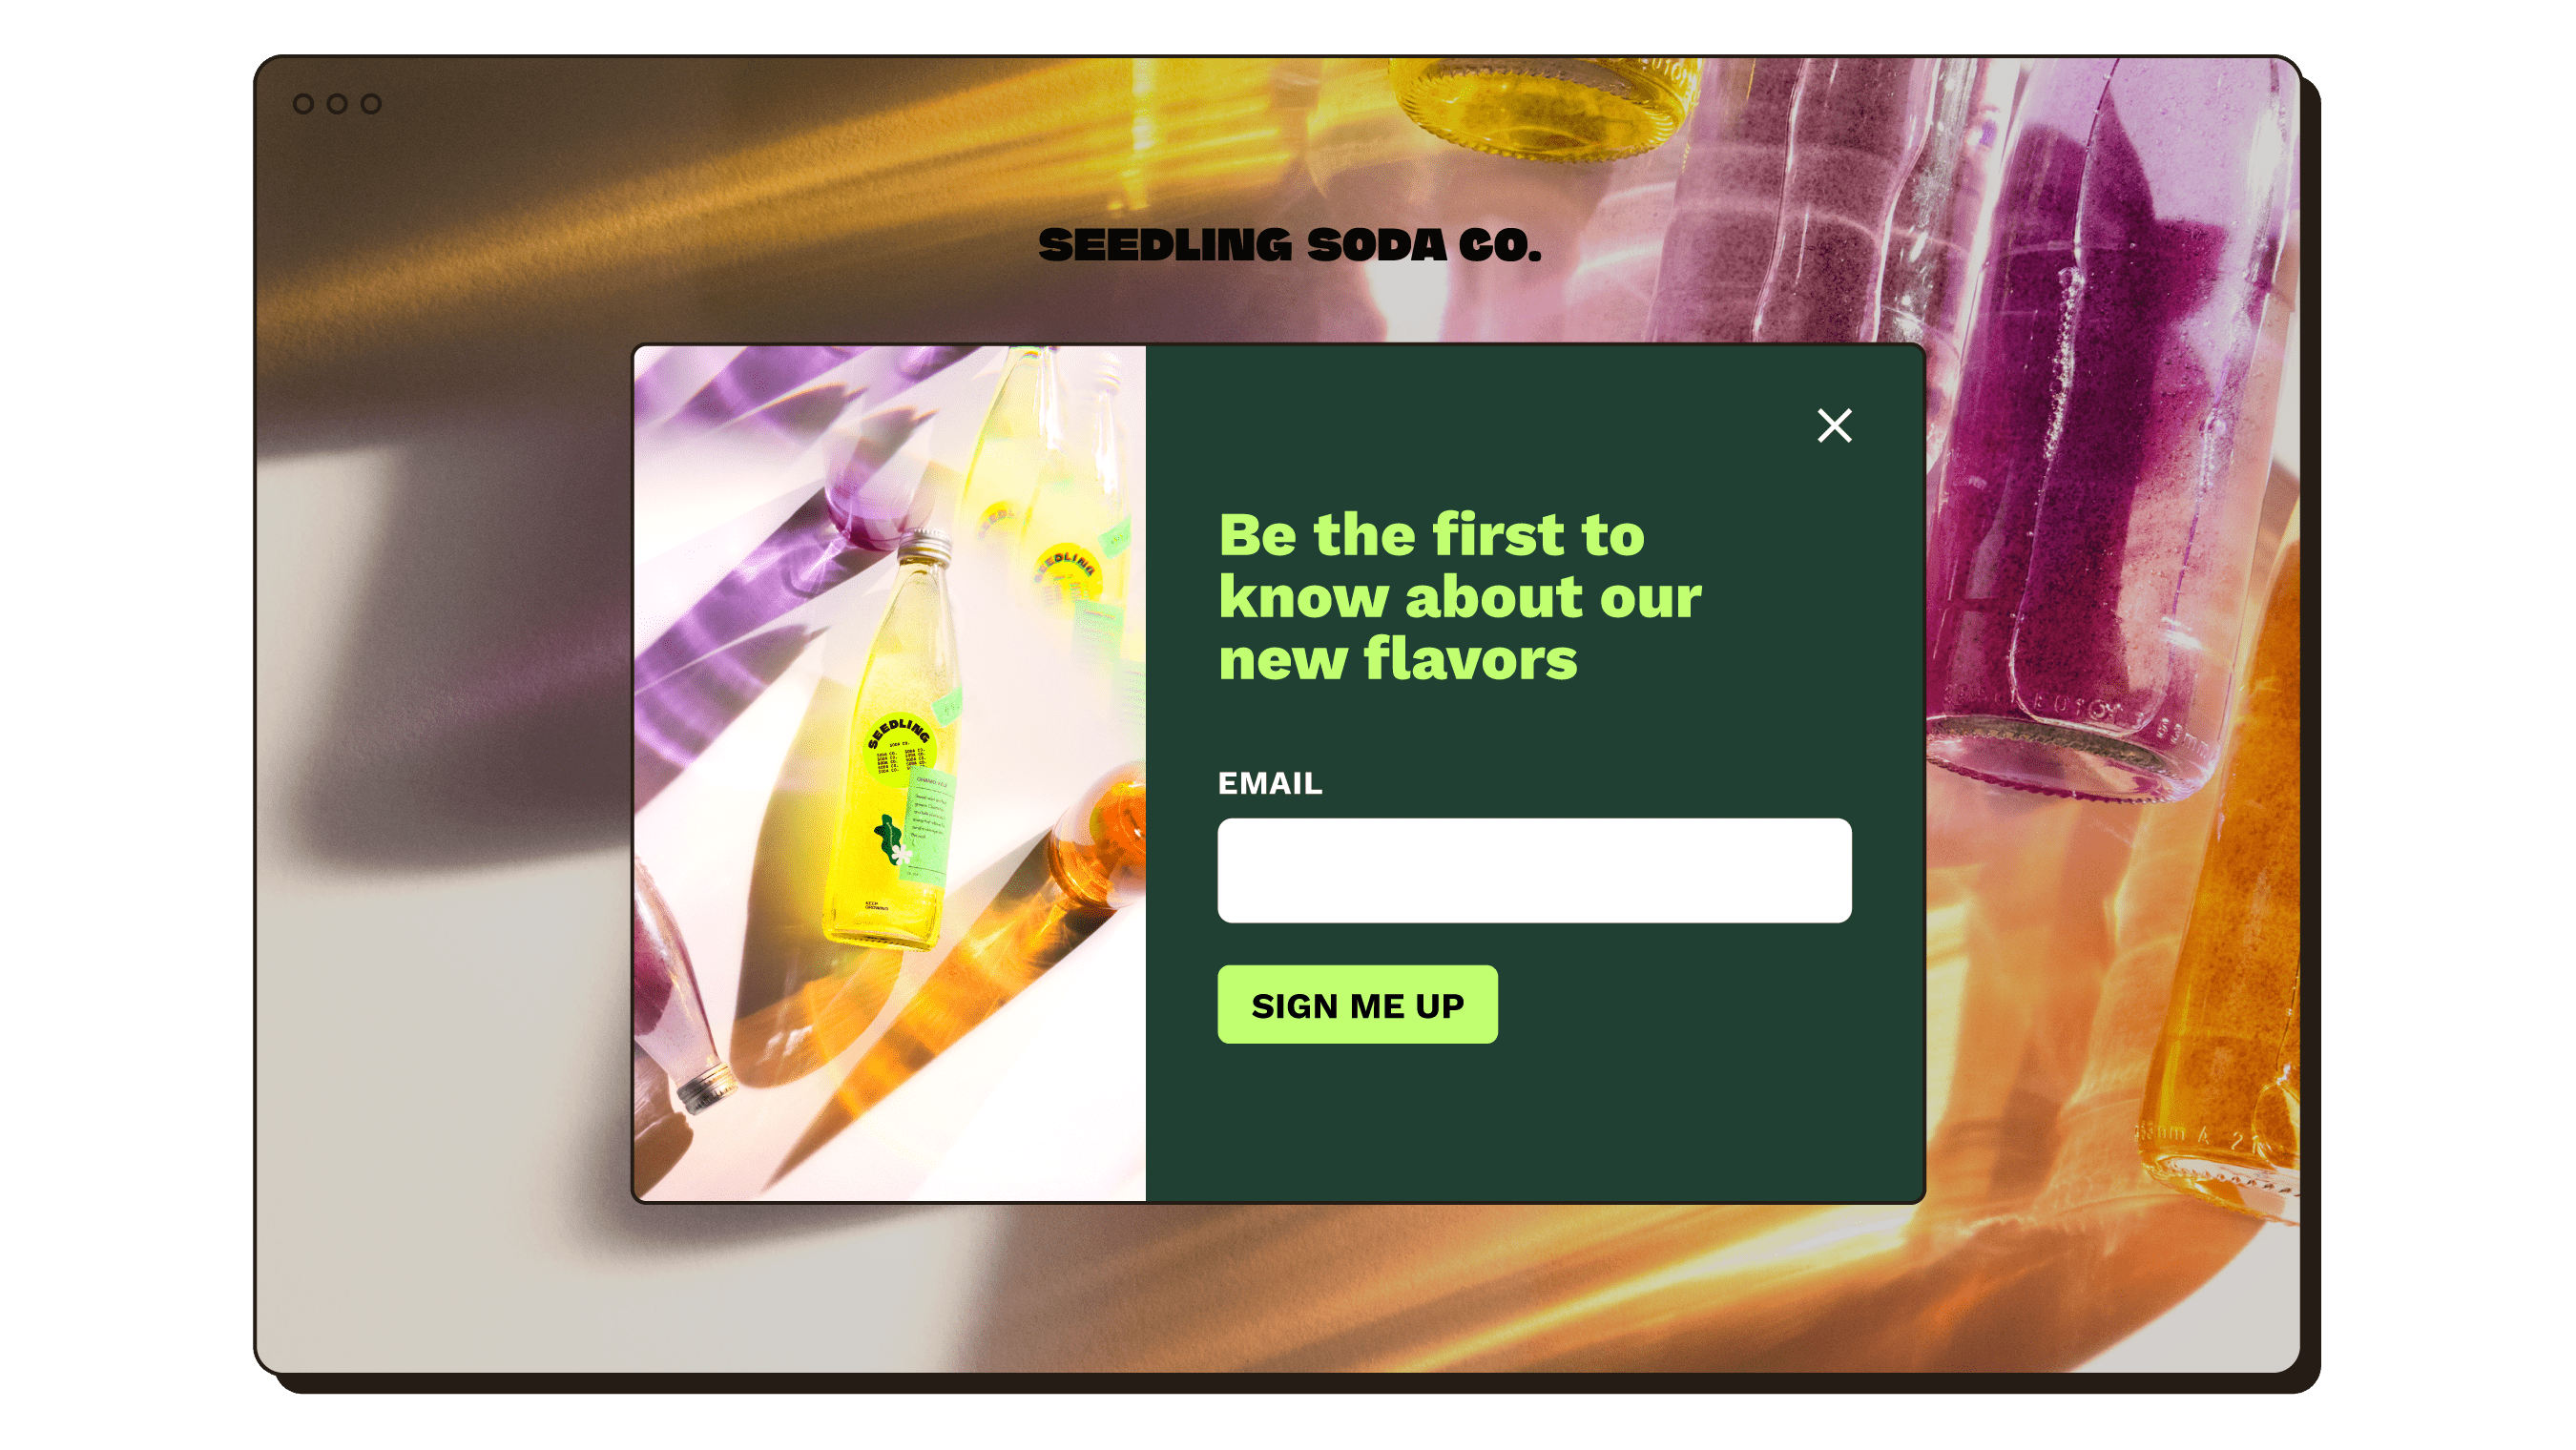 Website with signup form. Sign up to be the first to know about new flavors.